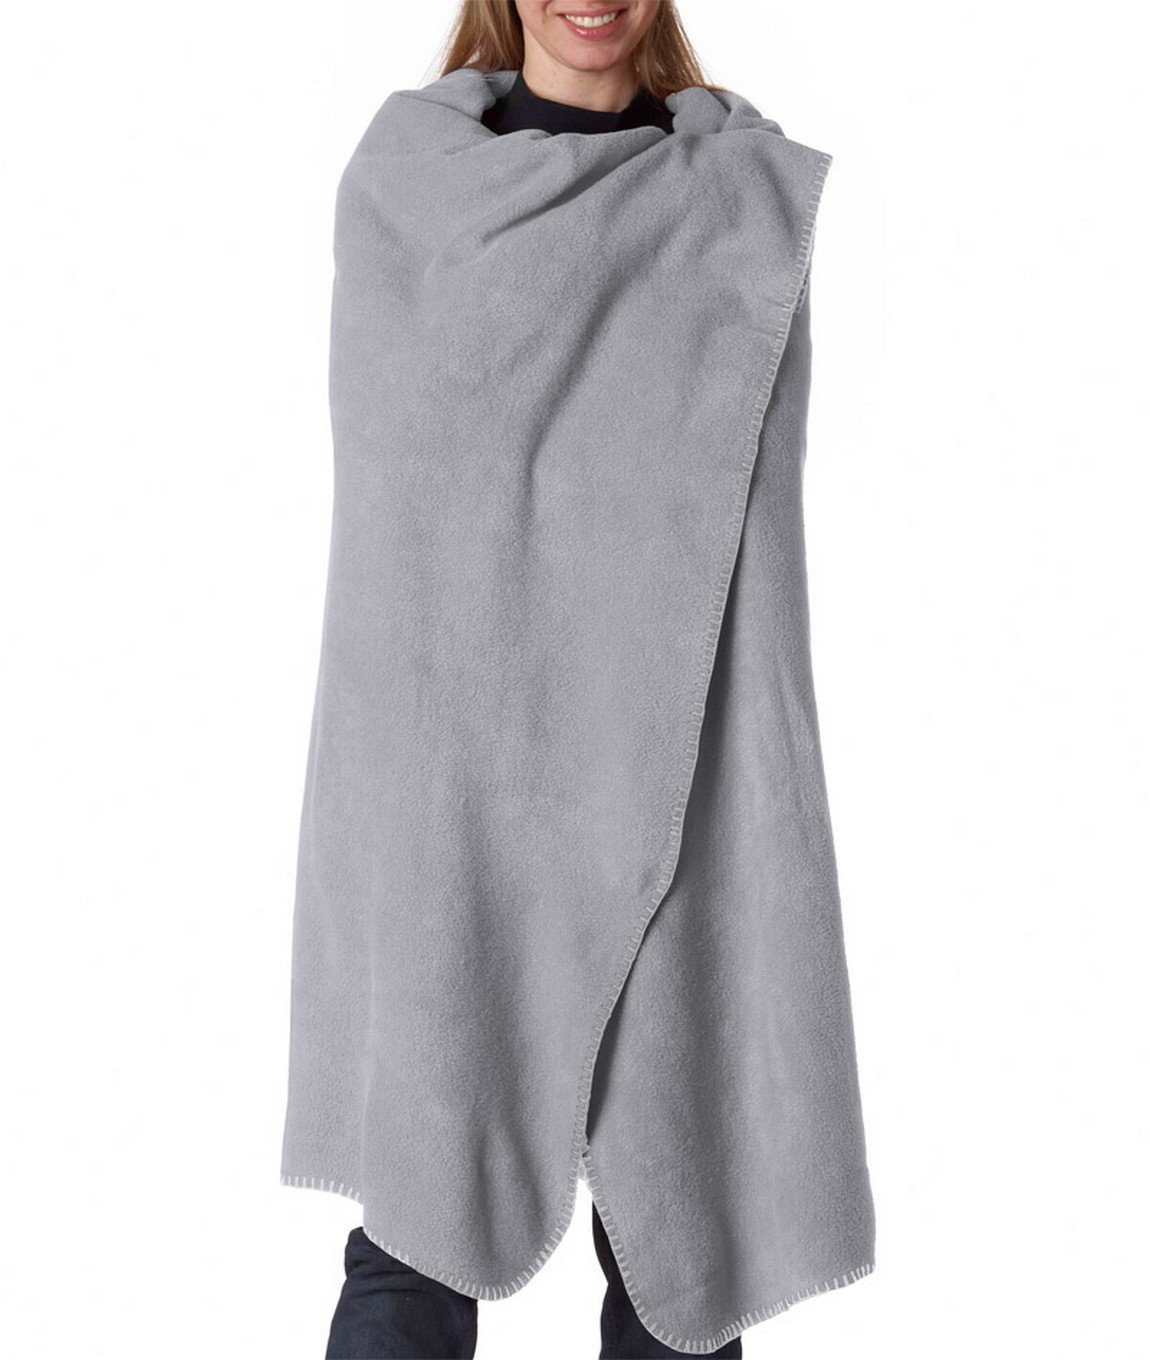 Ultraclub 8484 Iceberg Fleece Blanket - Grey - One